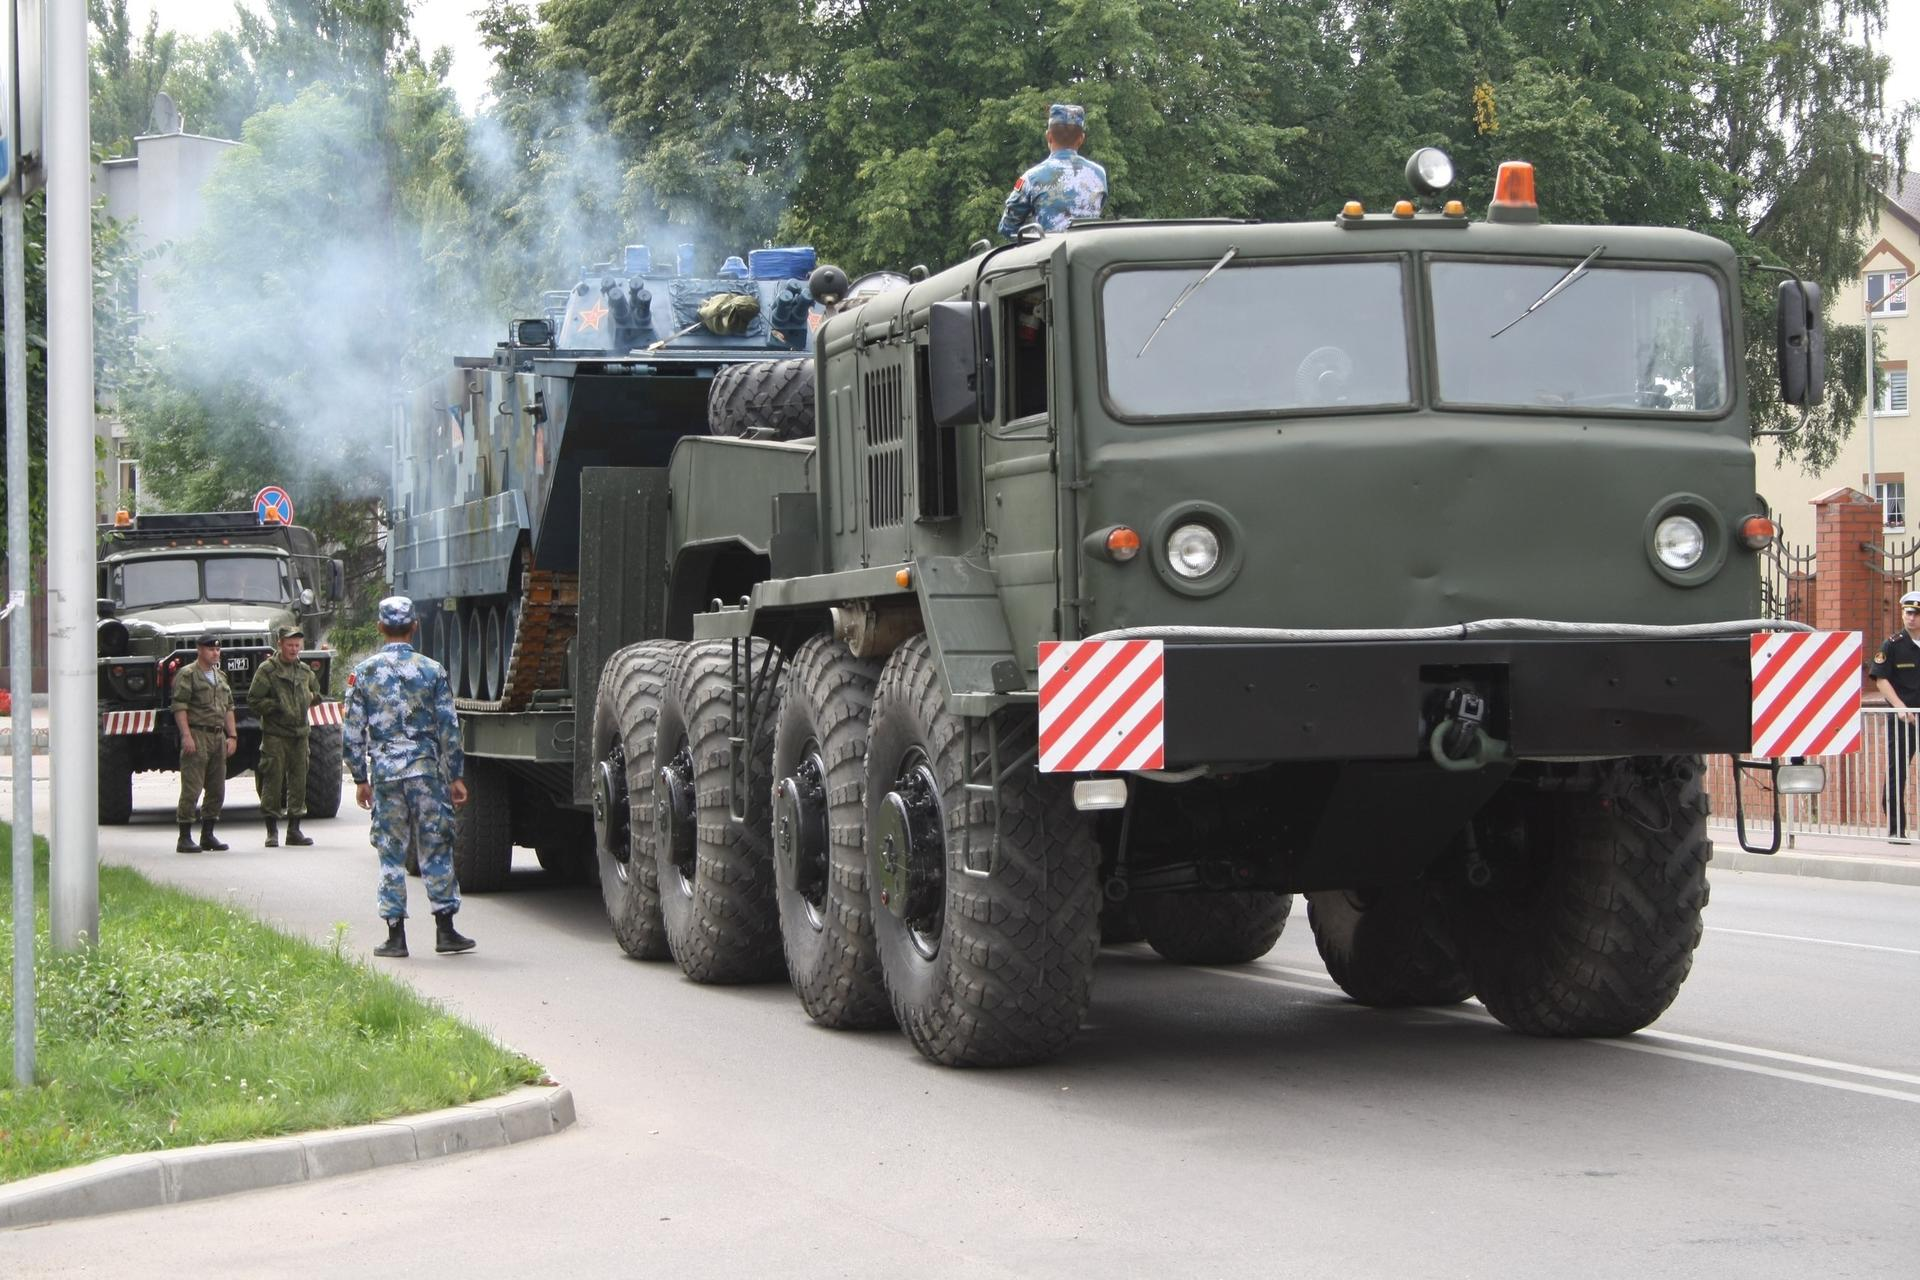 Chinese Marine ZBD05 Combat Vehicles Arrive to Russia (First Photos)